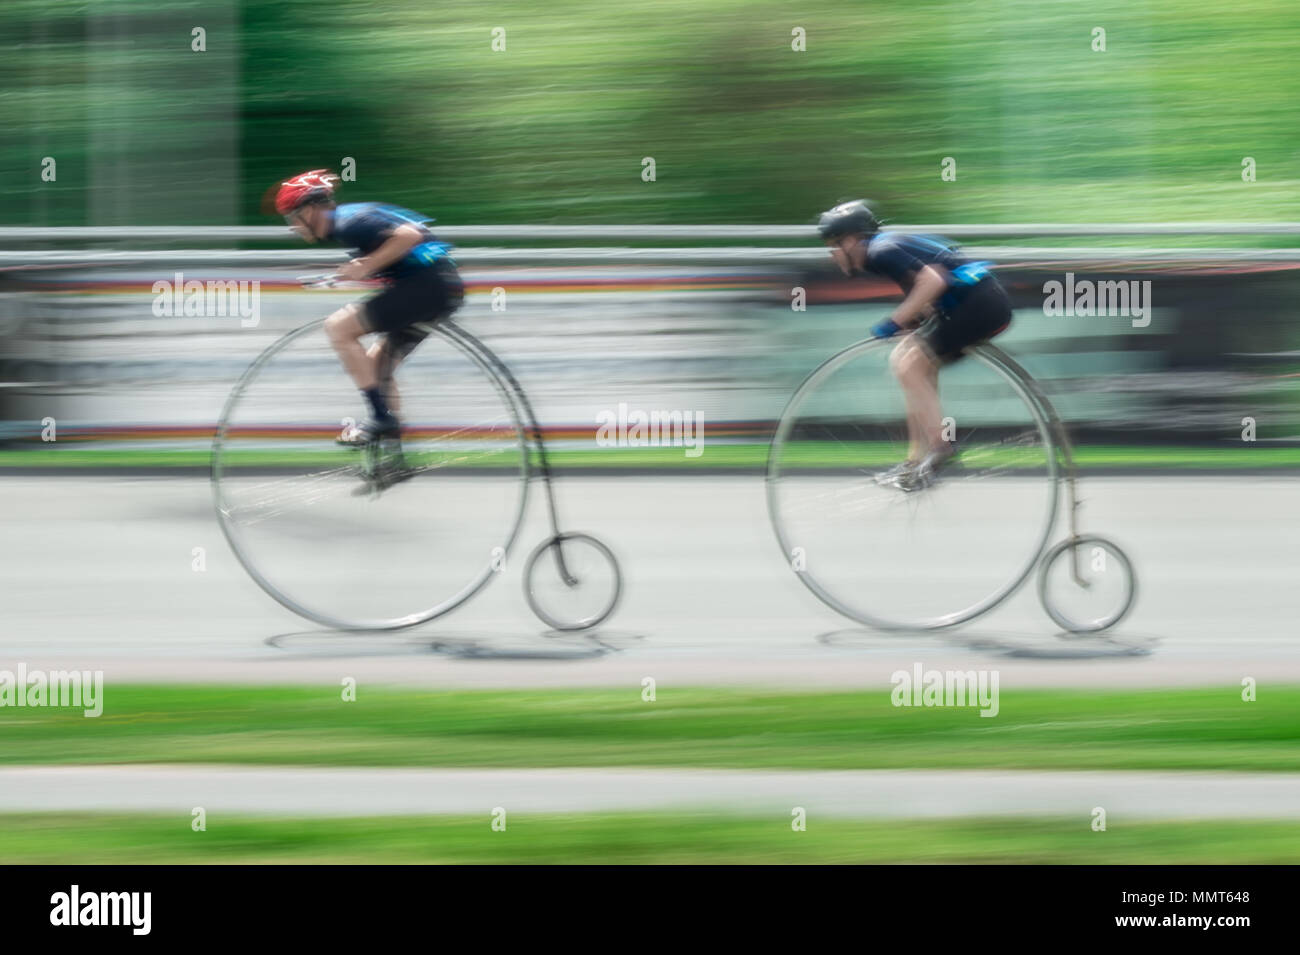 London, UK. 13th May, 2018. Members of the Penny Farthing cycling club perform track racing at Herne Hill velodrome. Credit: Guy Corbishley/Alamy Live News Stock Photo